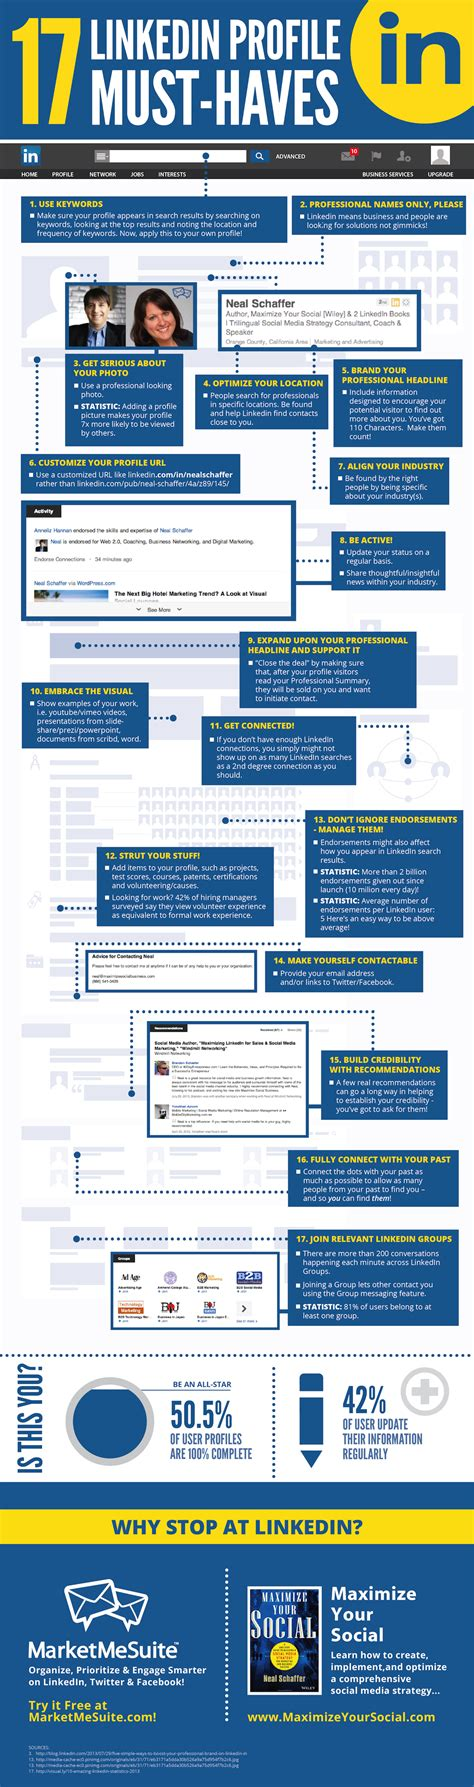 17 linkedin profile must haves infographic daily infographic